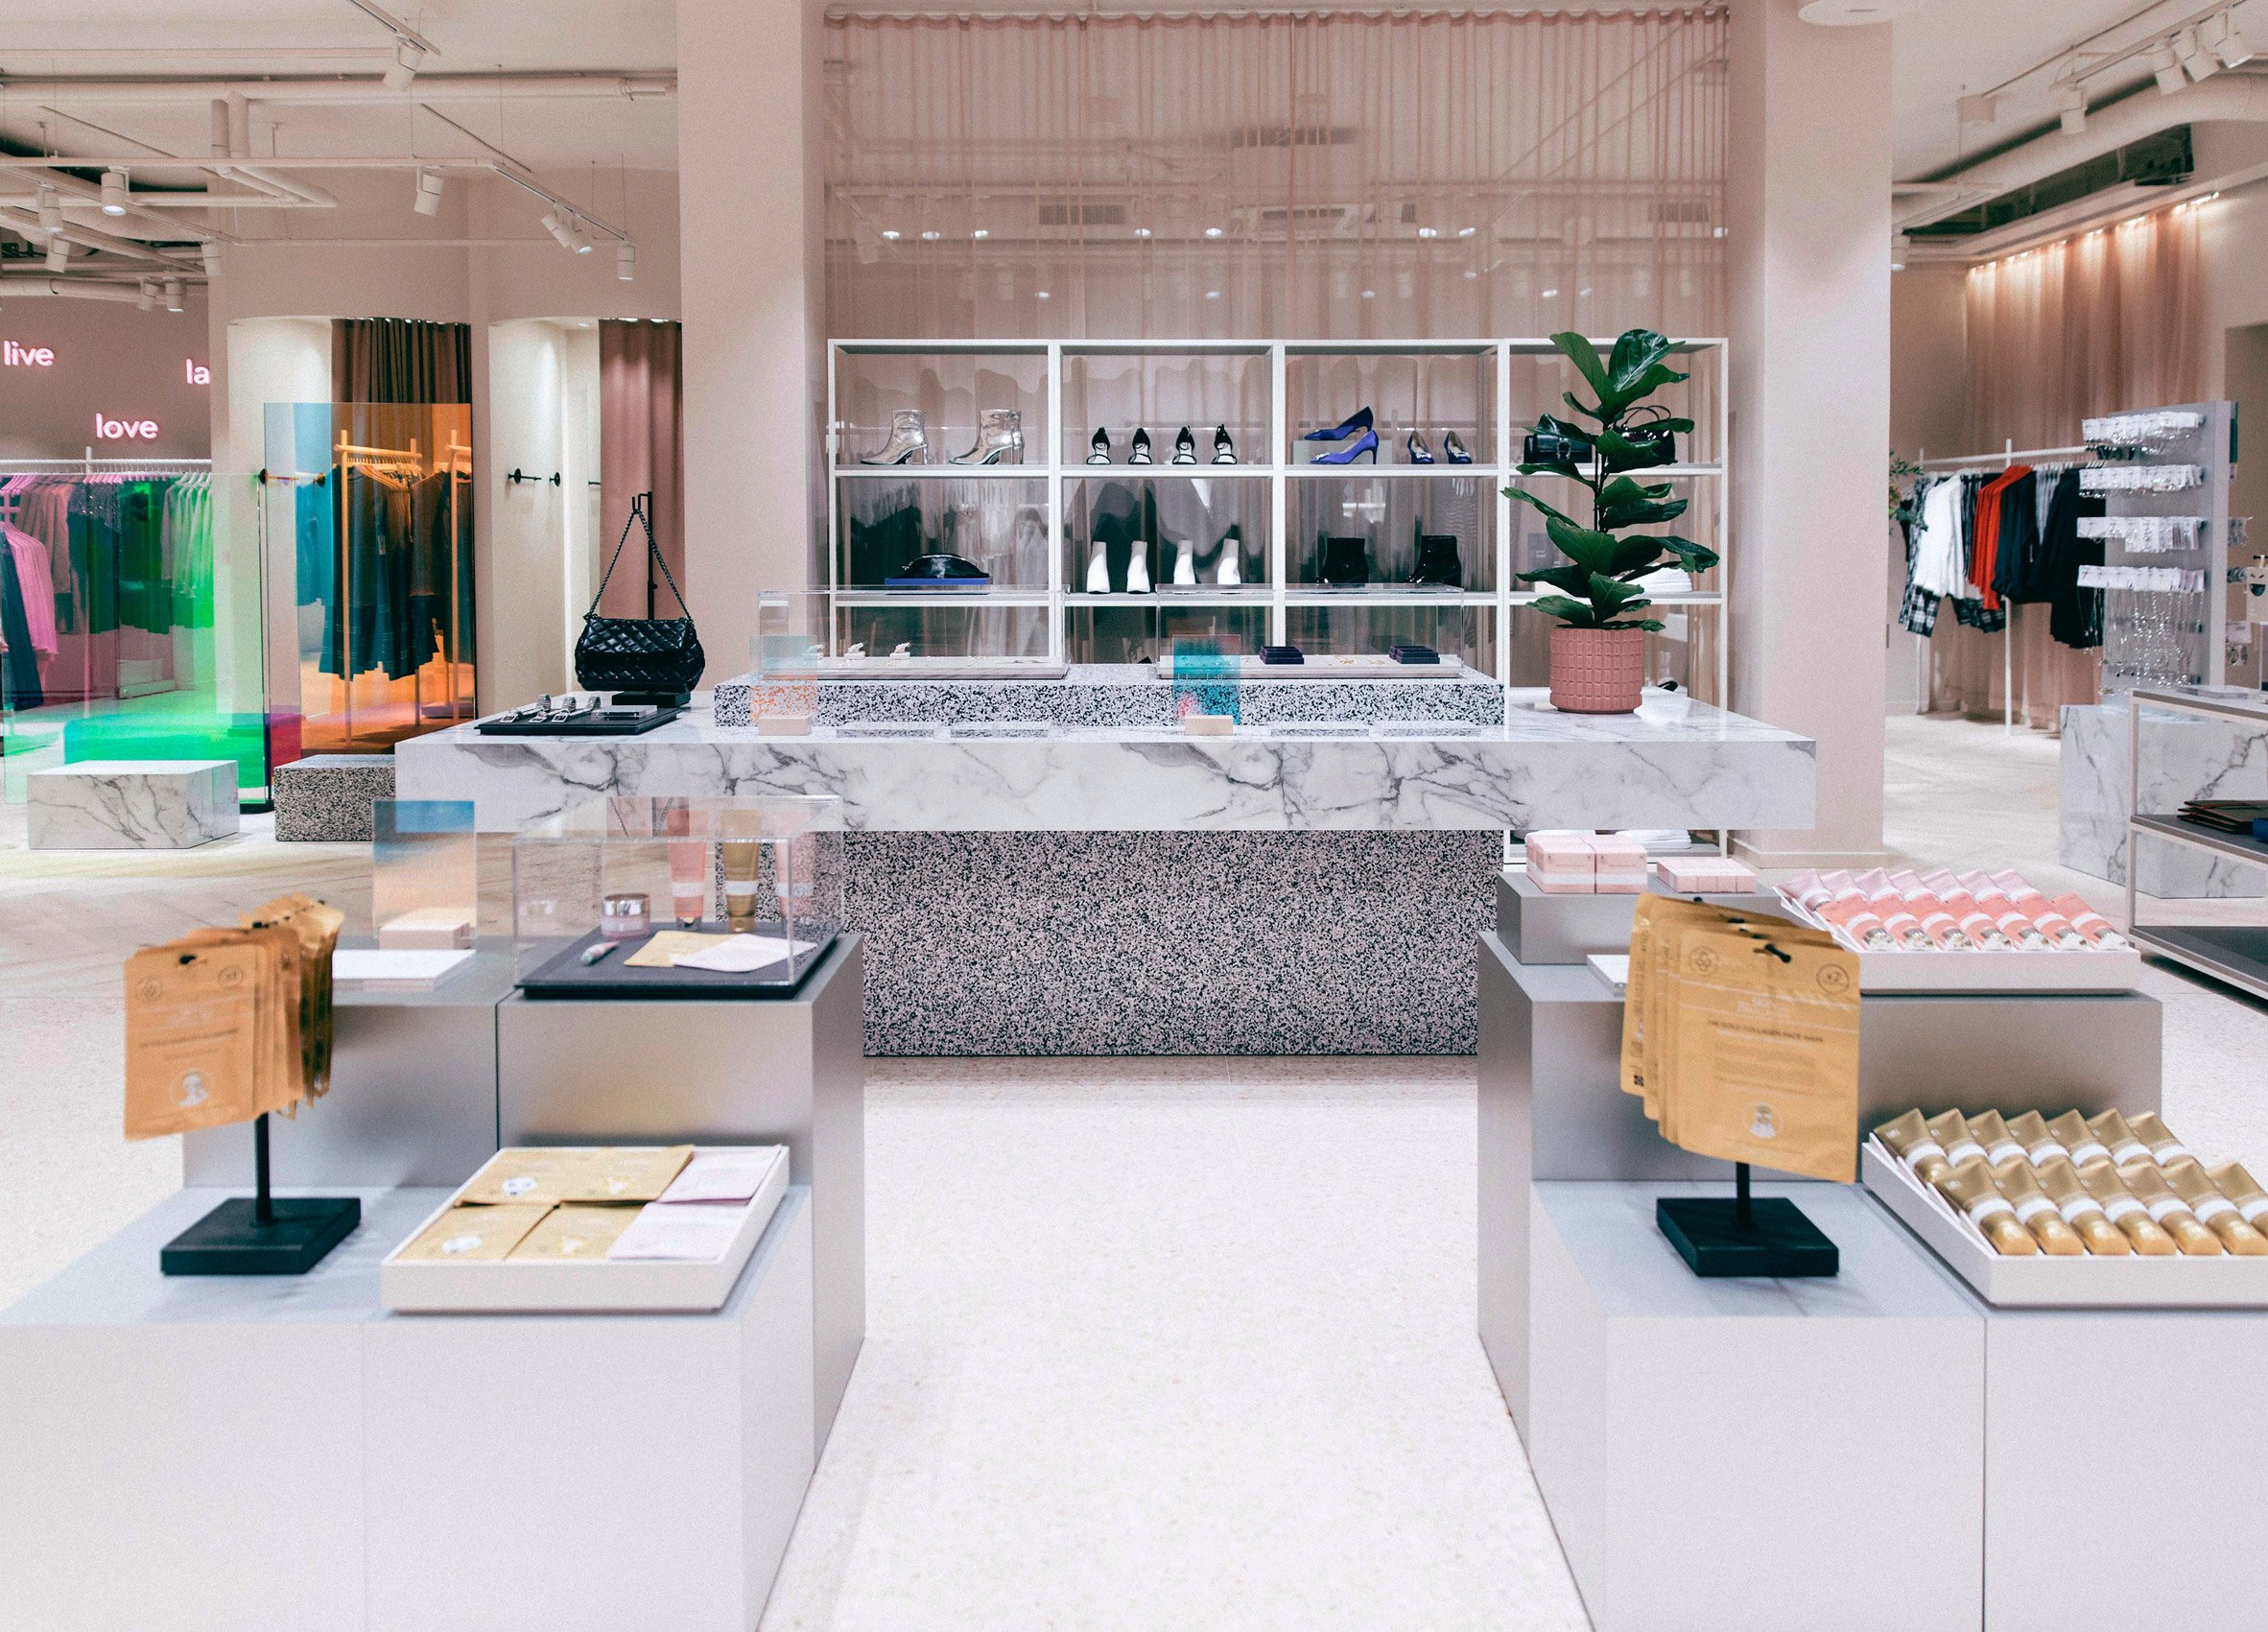 Interiors of Gina Tricot fashion store, designed by Note Design Studio and Open Studio